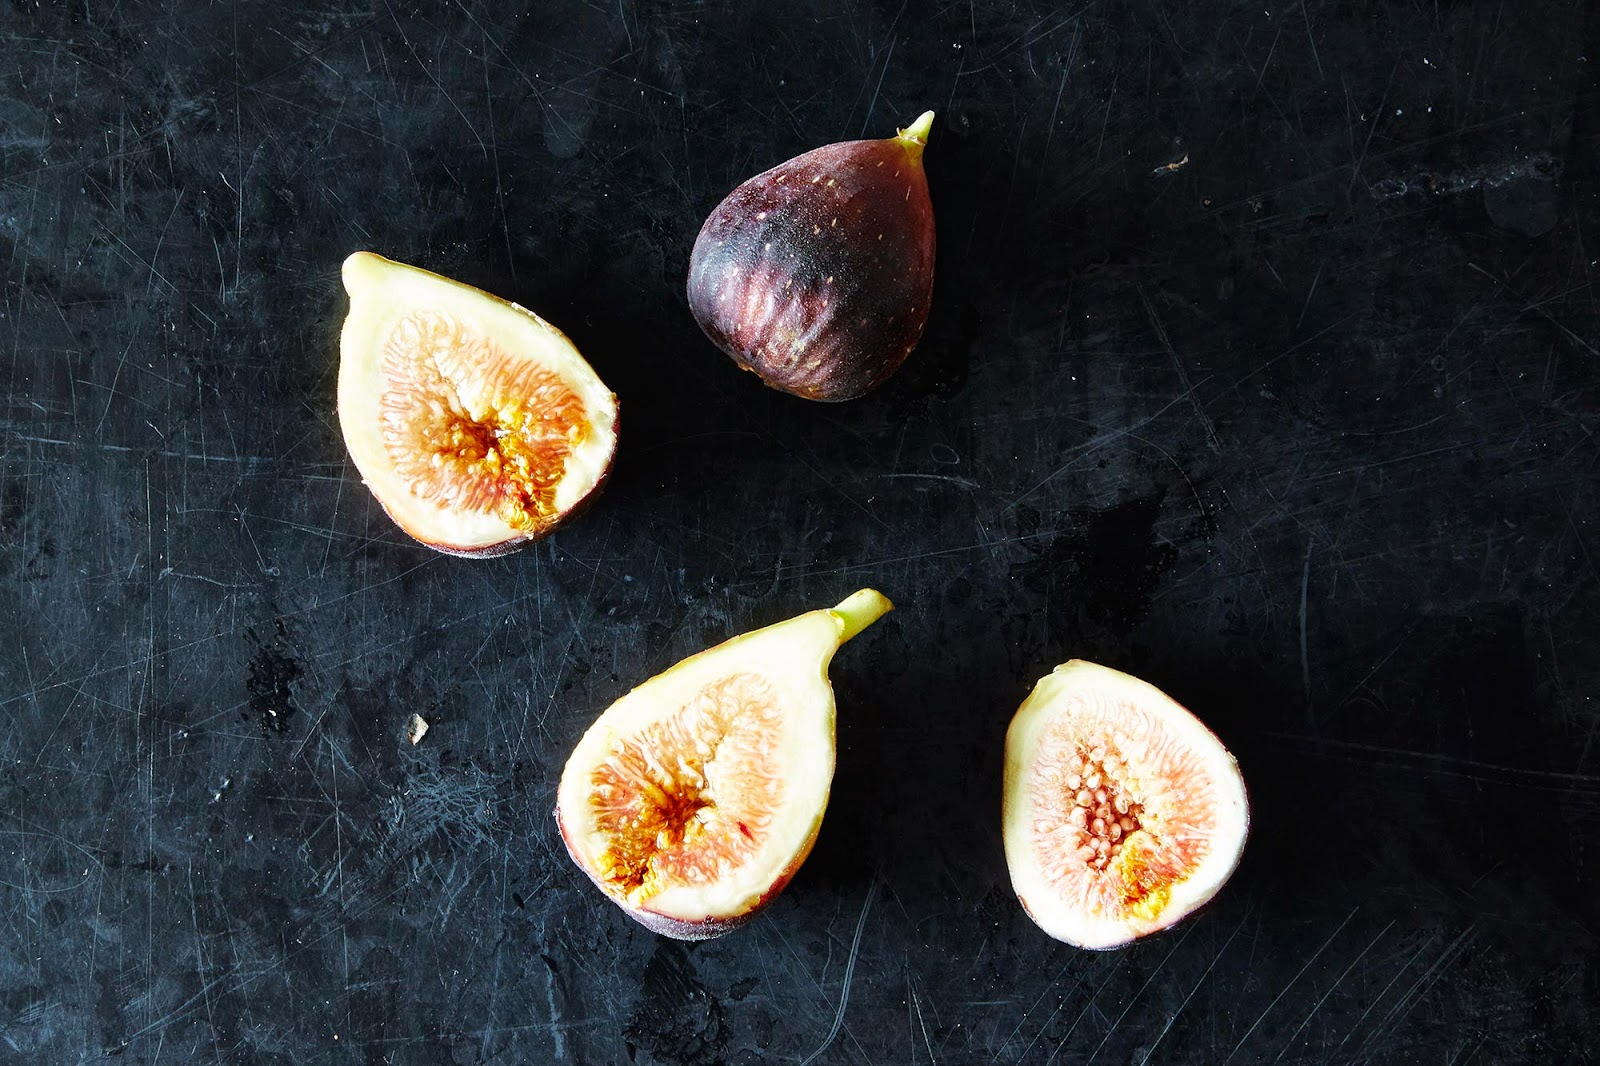 https://food52.com/blog/10789-fresh-figs-and-9-of-our-favorite-ways-to-use-them